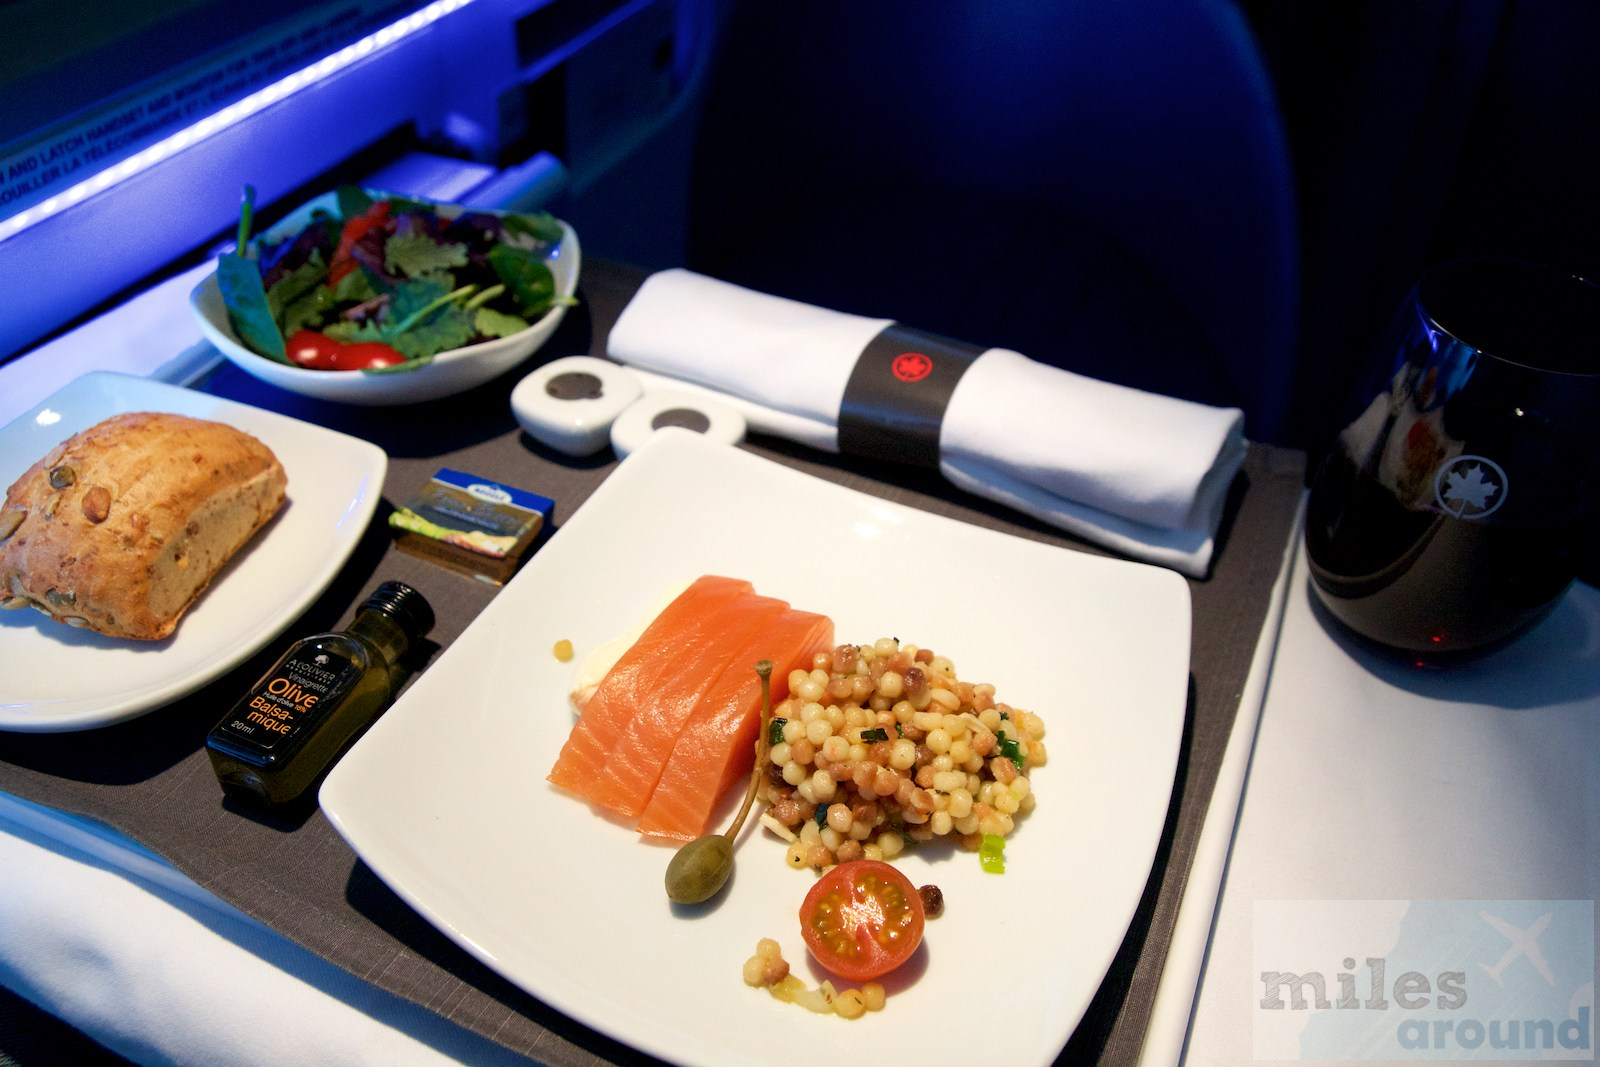 Air Canada Airbus A330 300 Business class inflight meal food Appetizer smoked salmon Fregola salad creme fraiche with lime